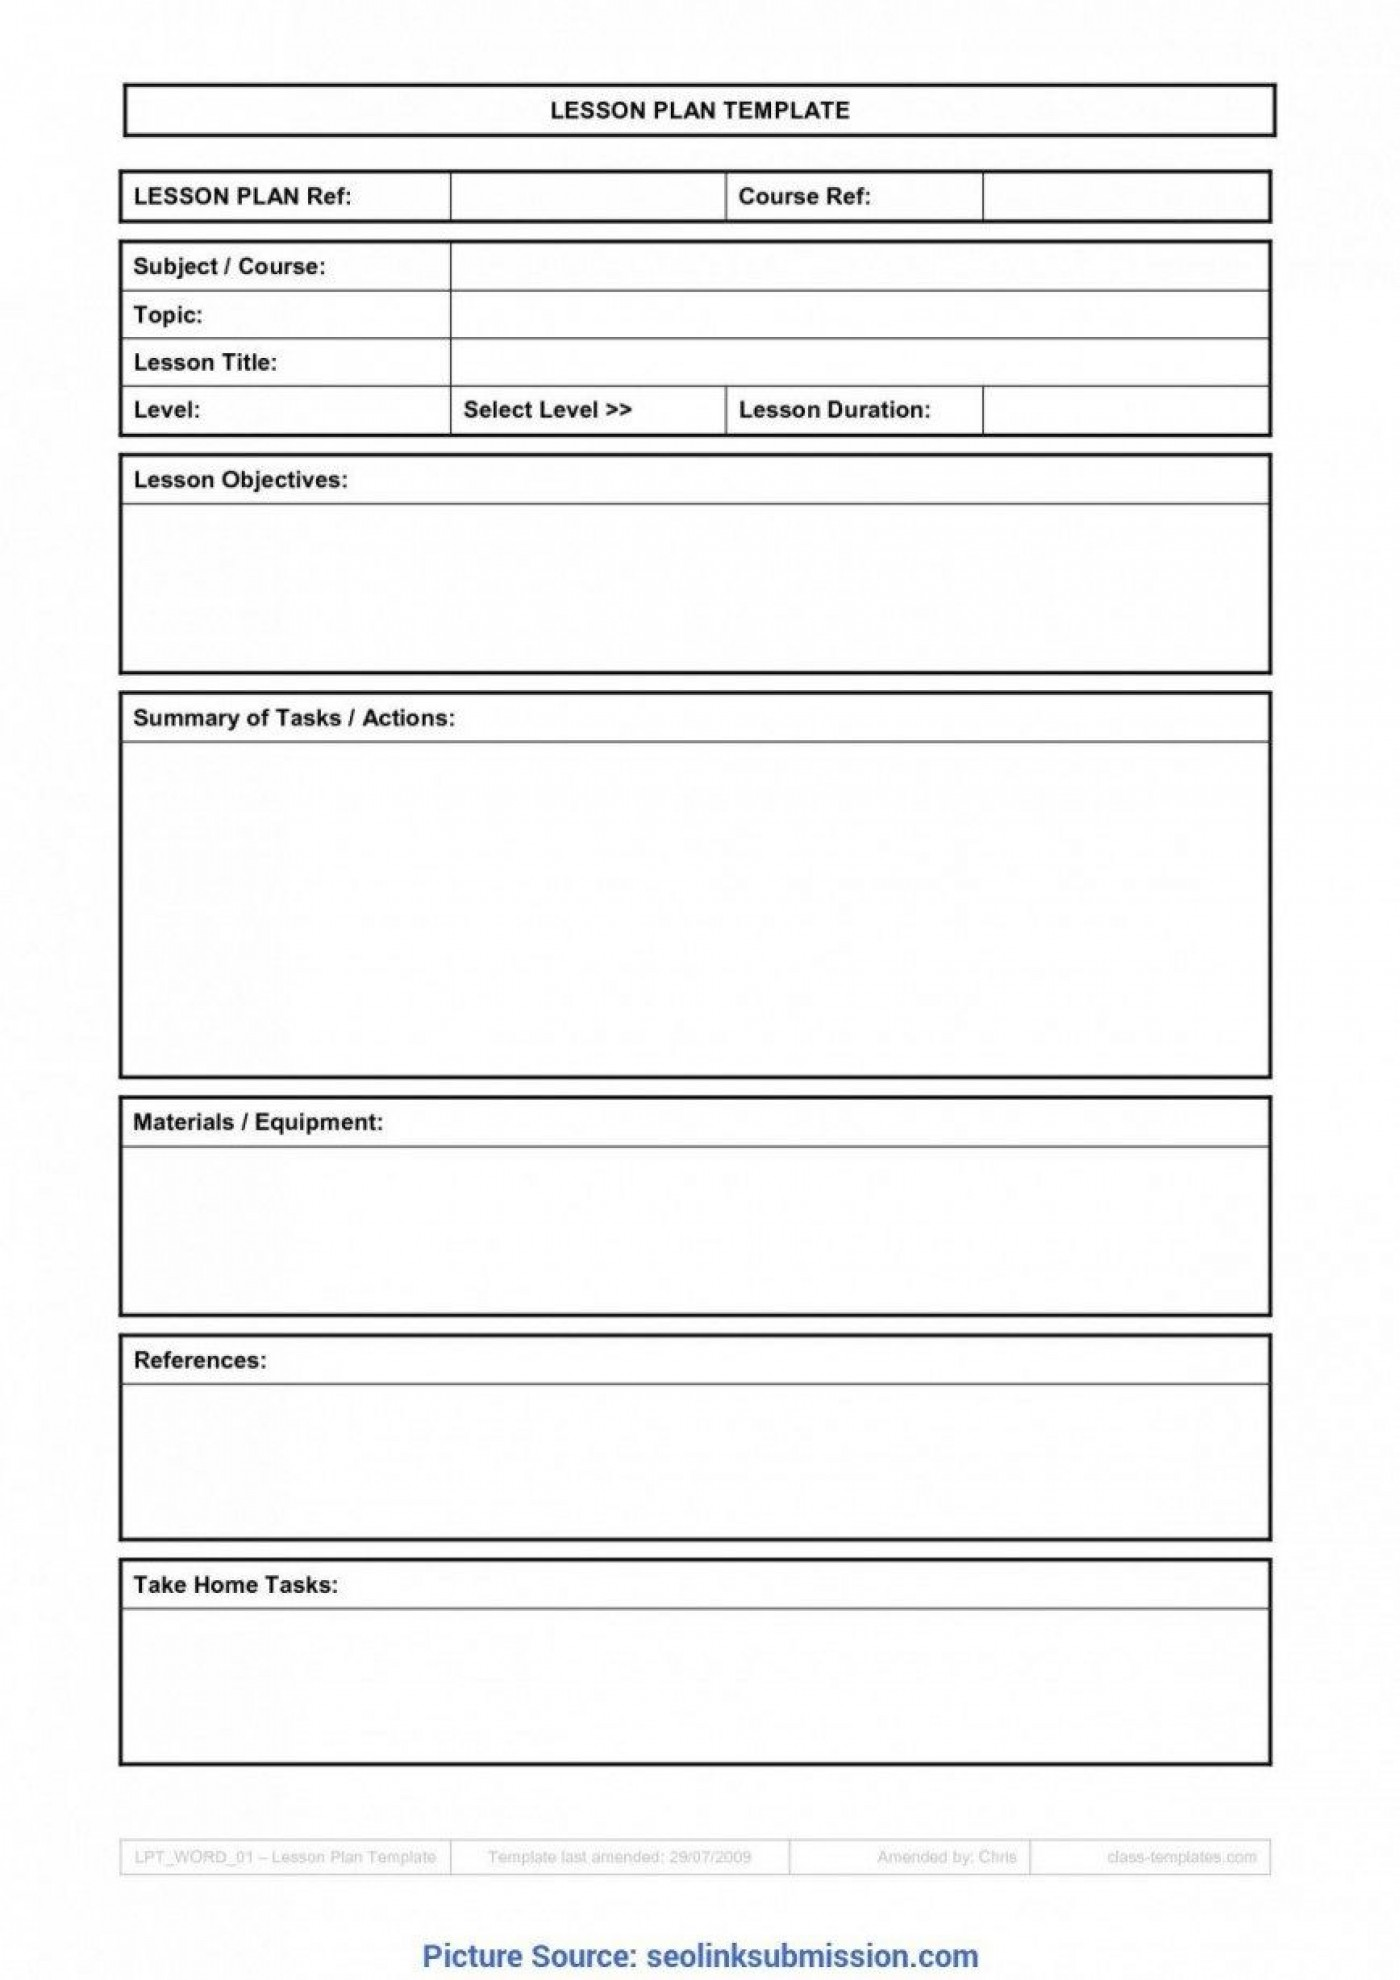 007 Top Weekly Lesson Plan Template Google Doc Sample  Ubd Siop1400